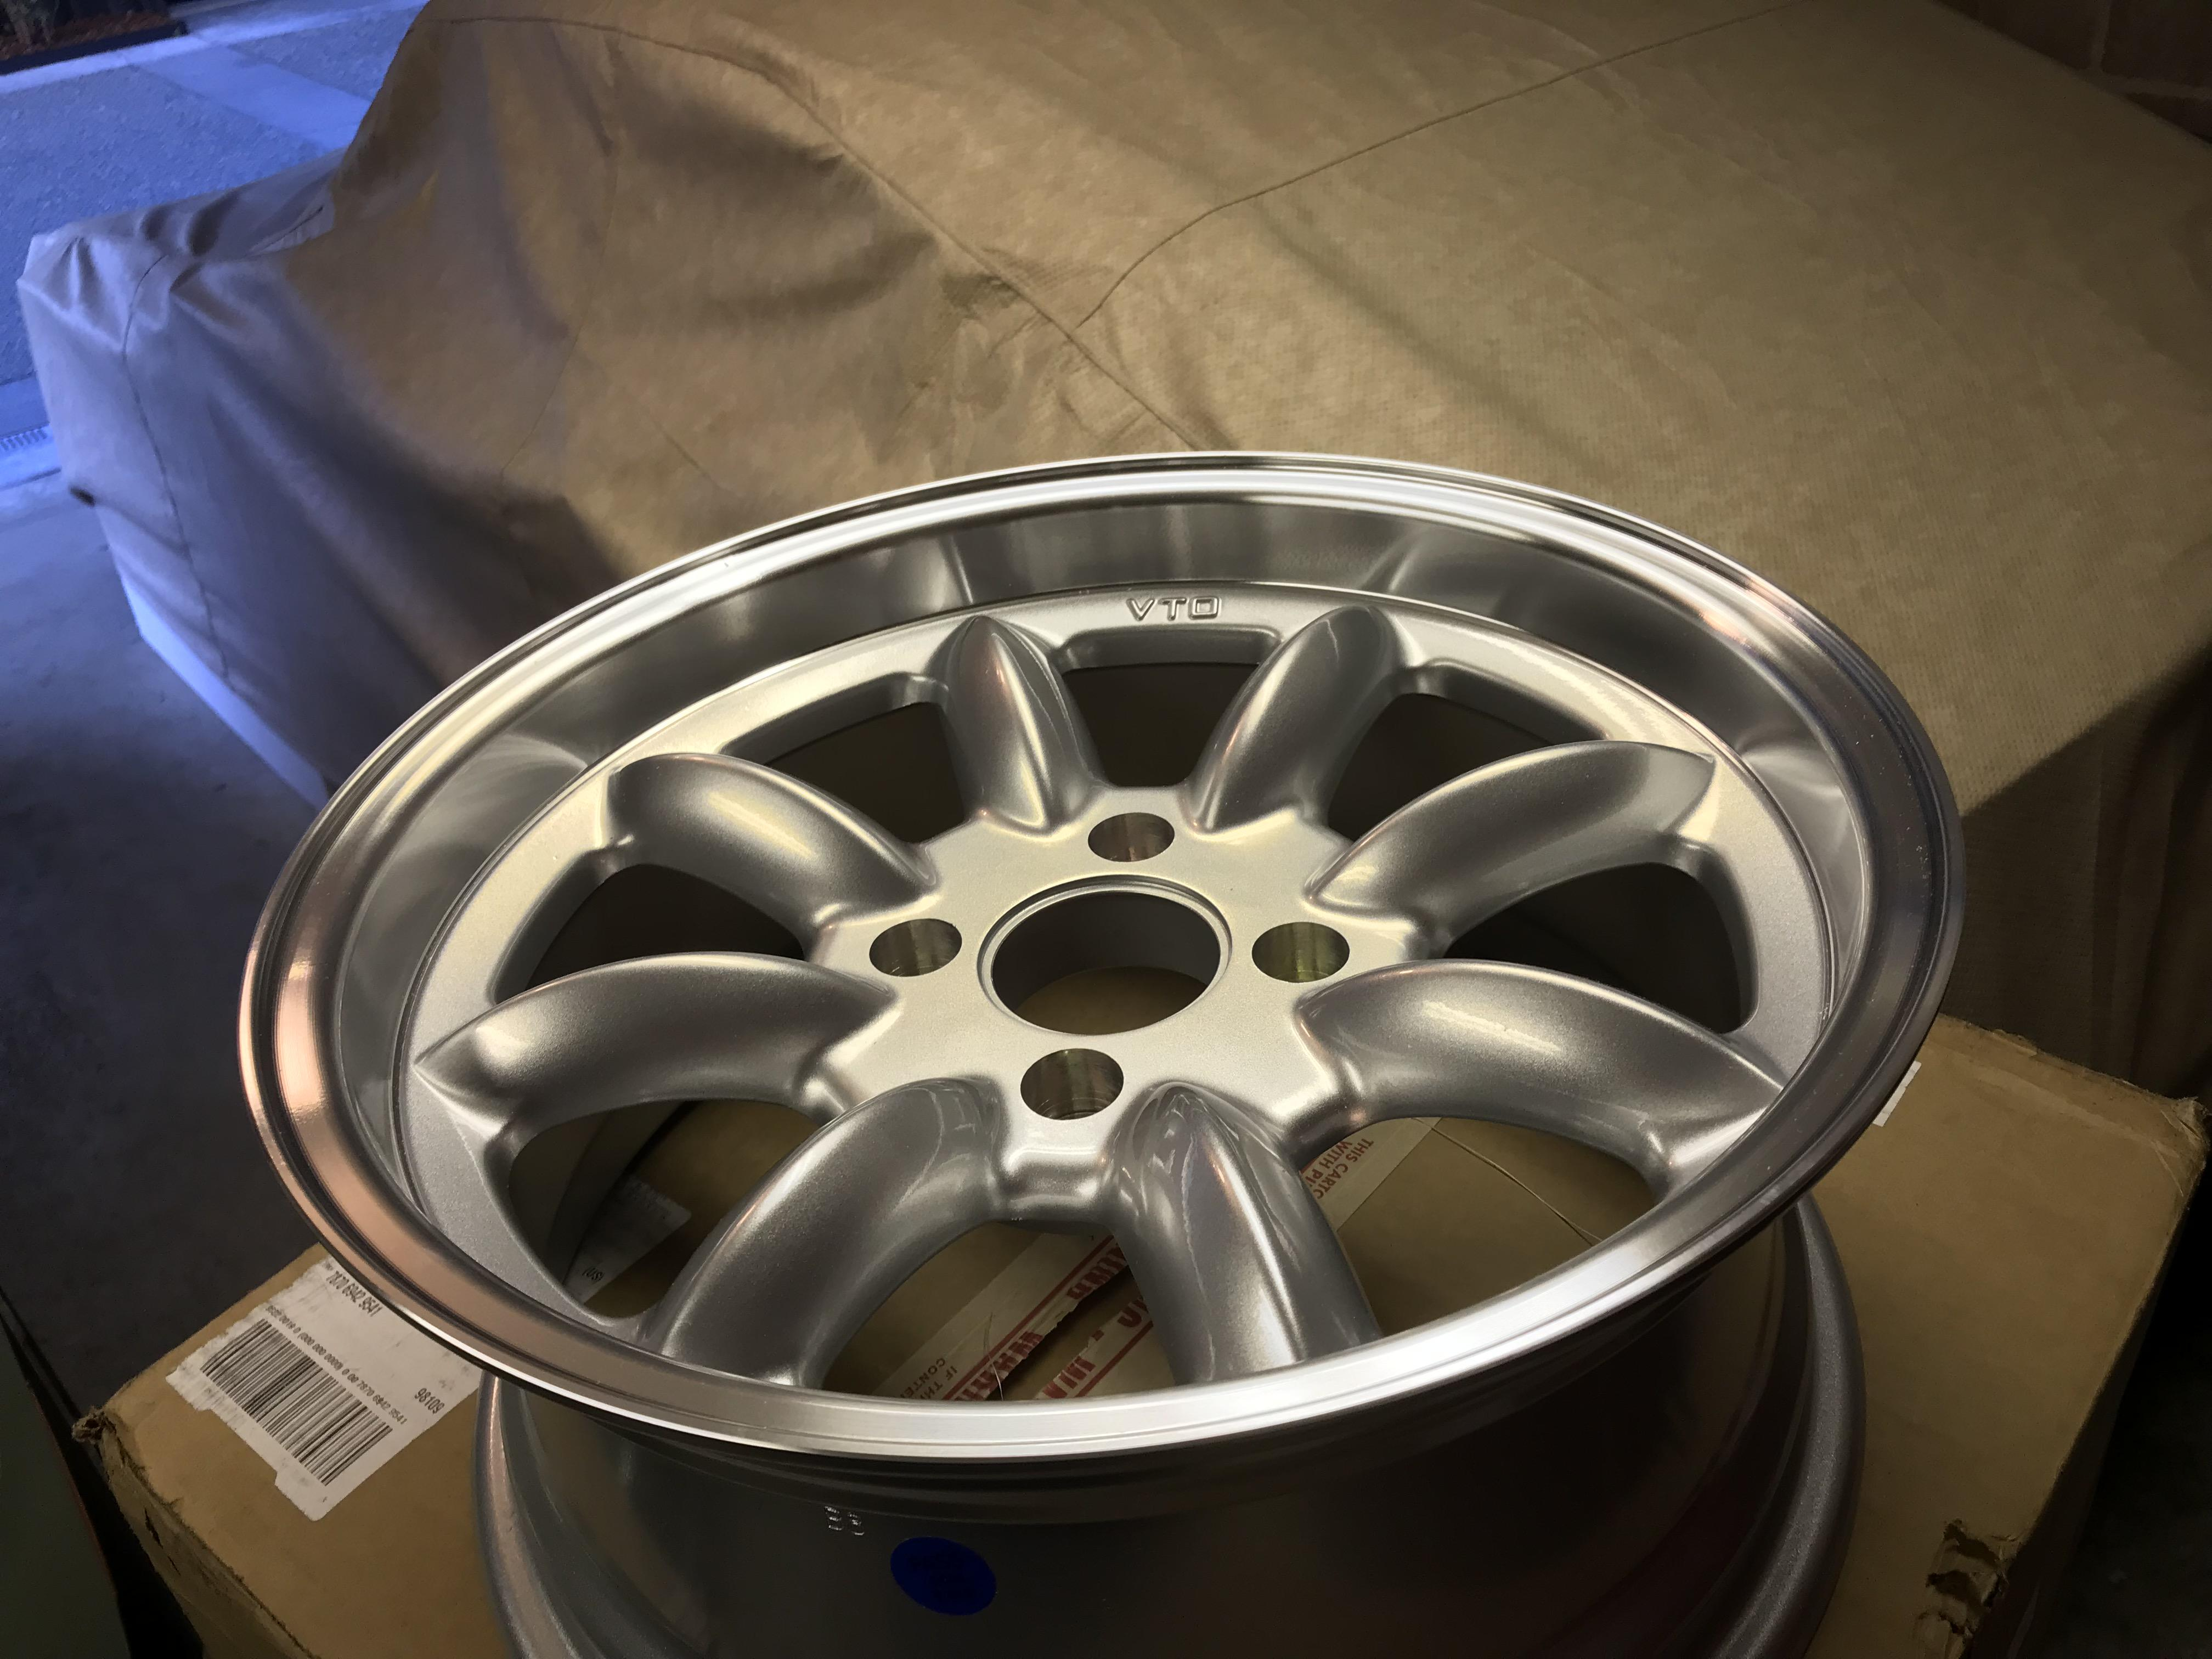 Picked up a set of VTO Deep Dish 16's